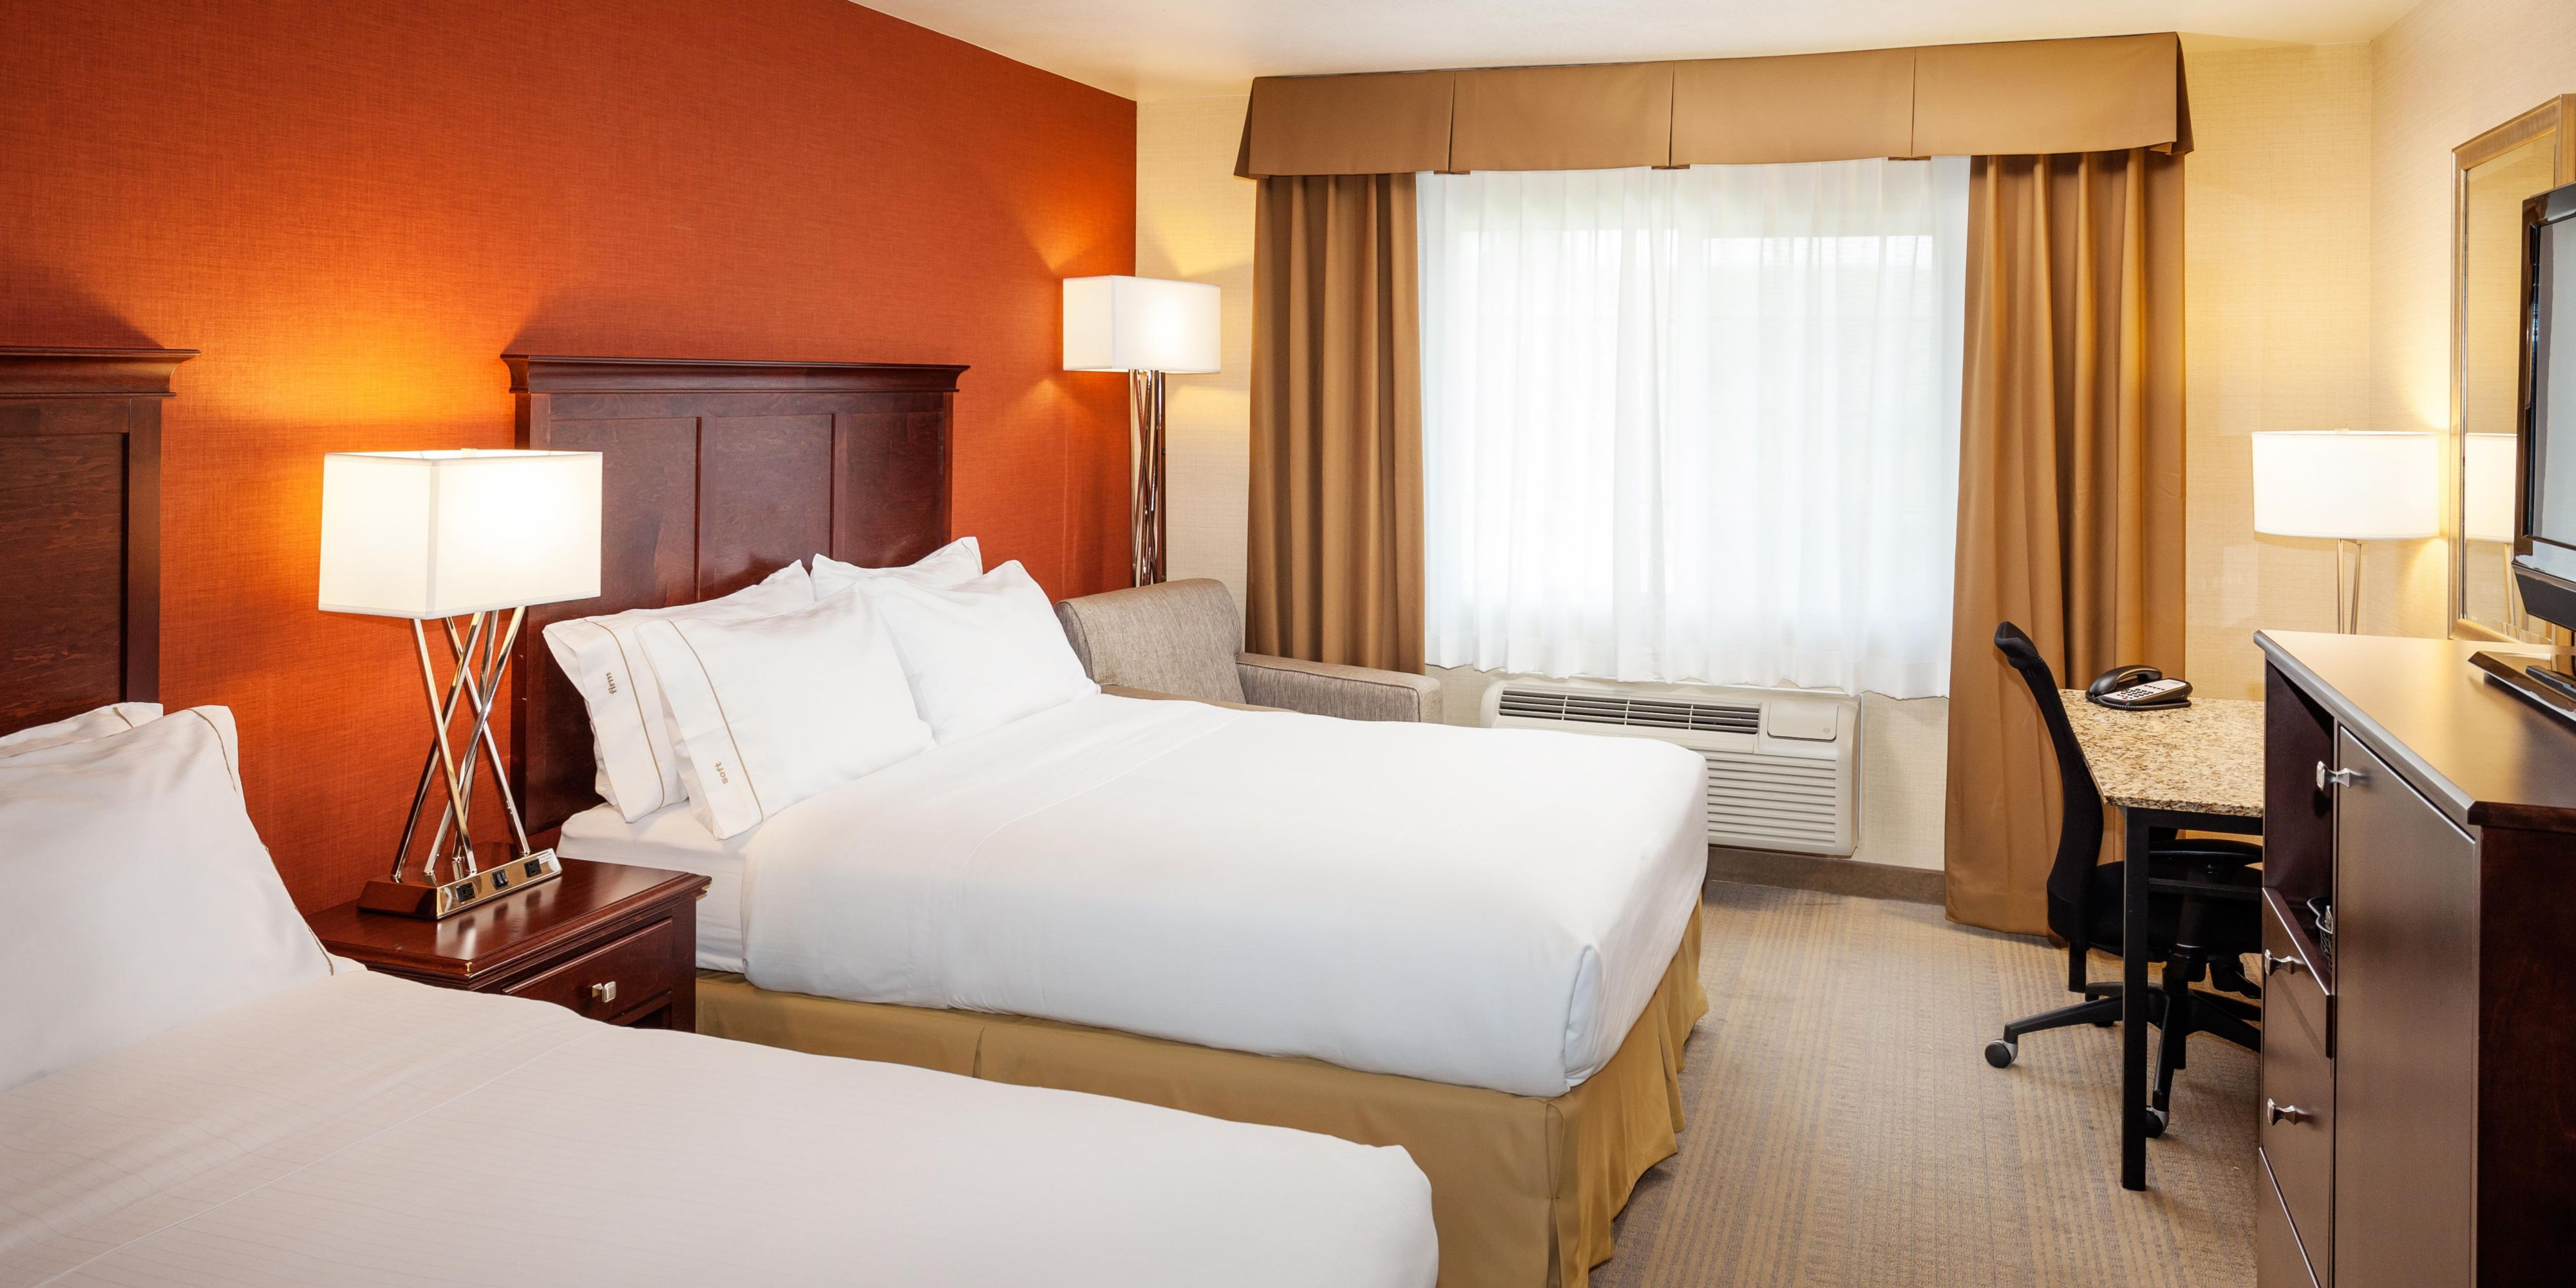 Pullman Hotel, WA Holiday Inn Express & Suites Pullman Hotel